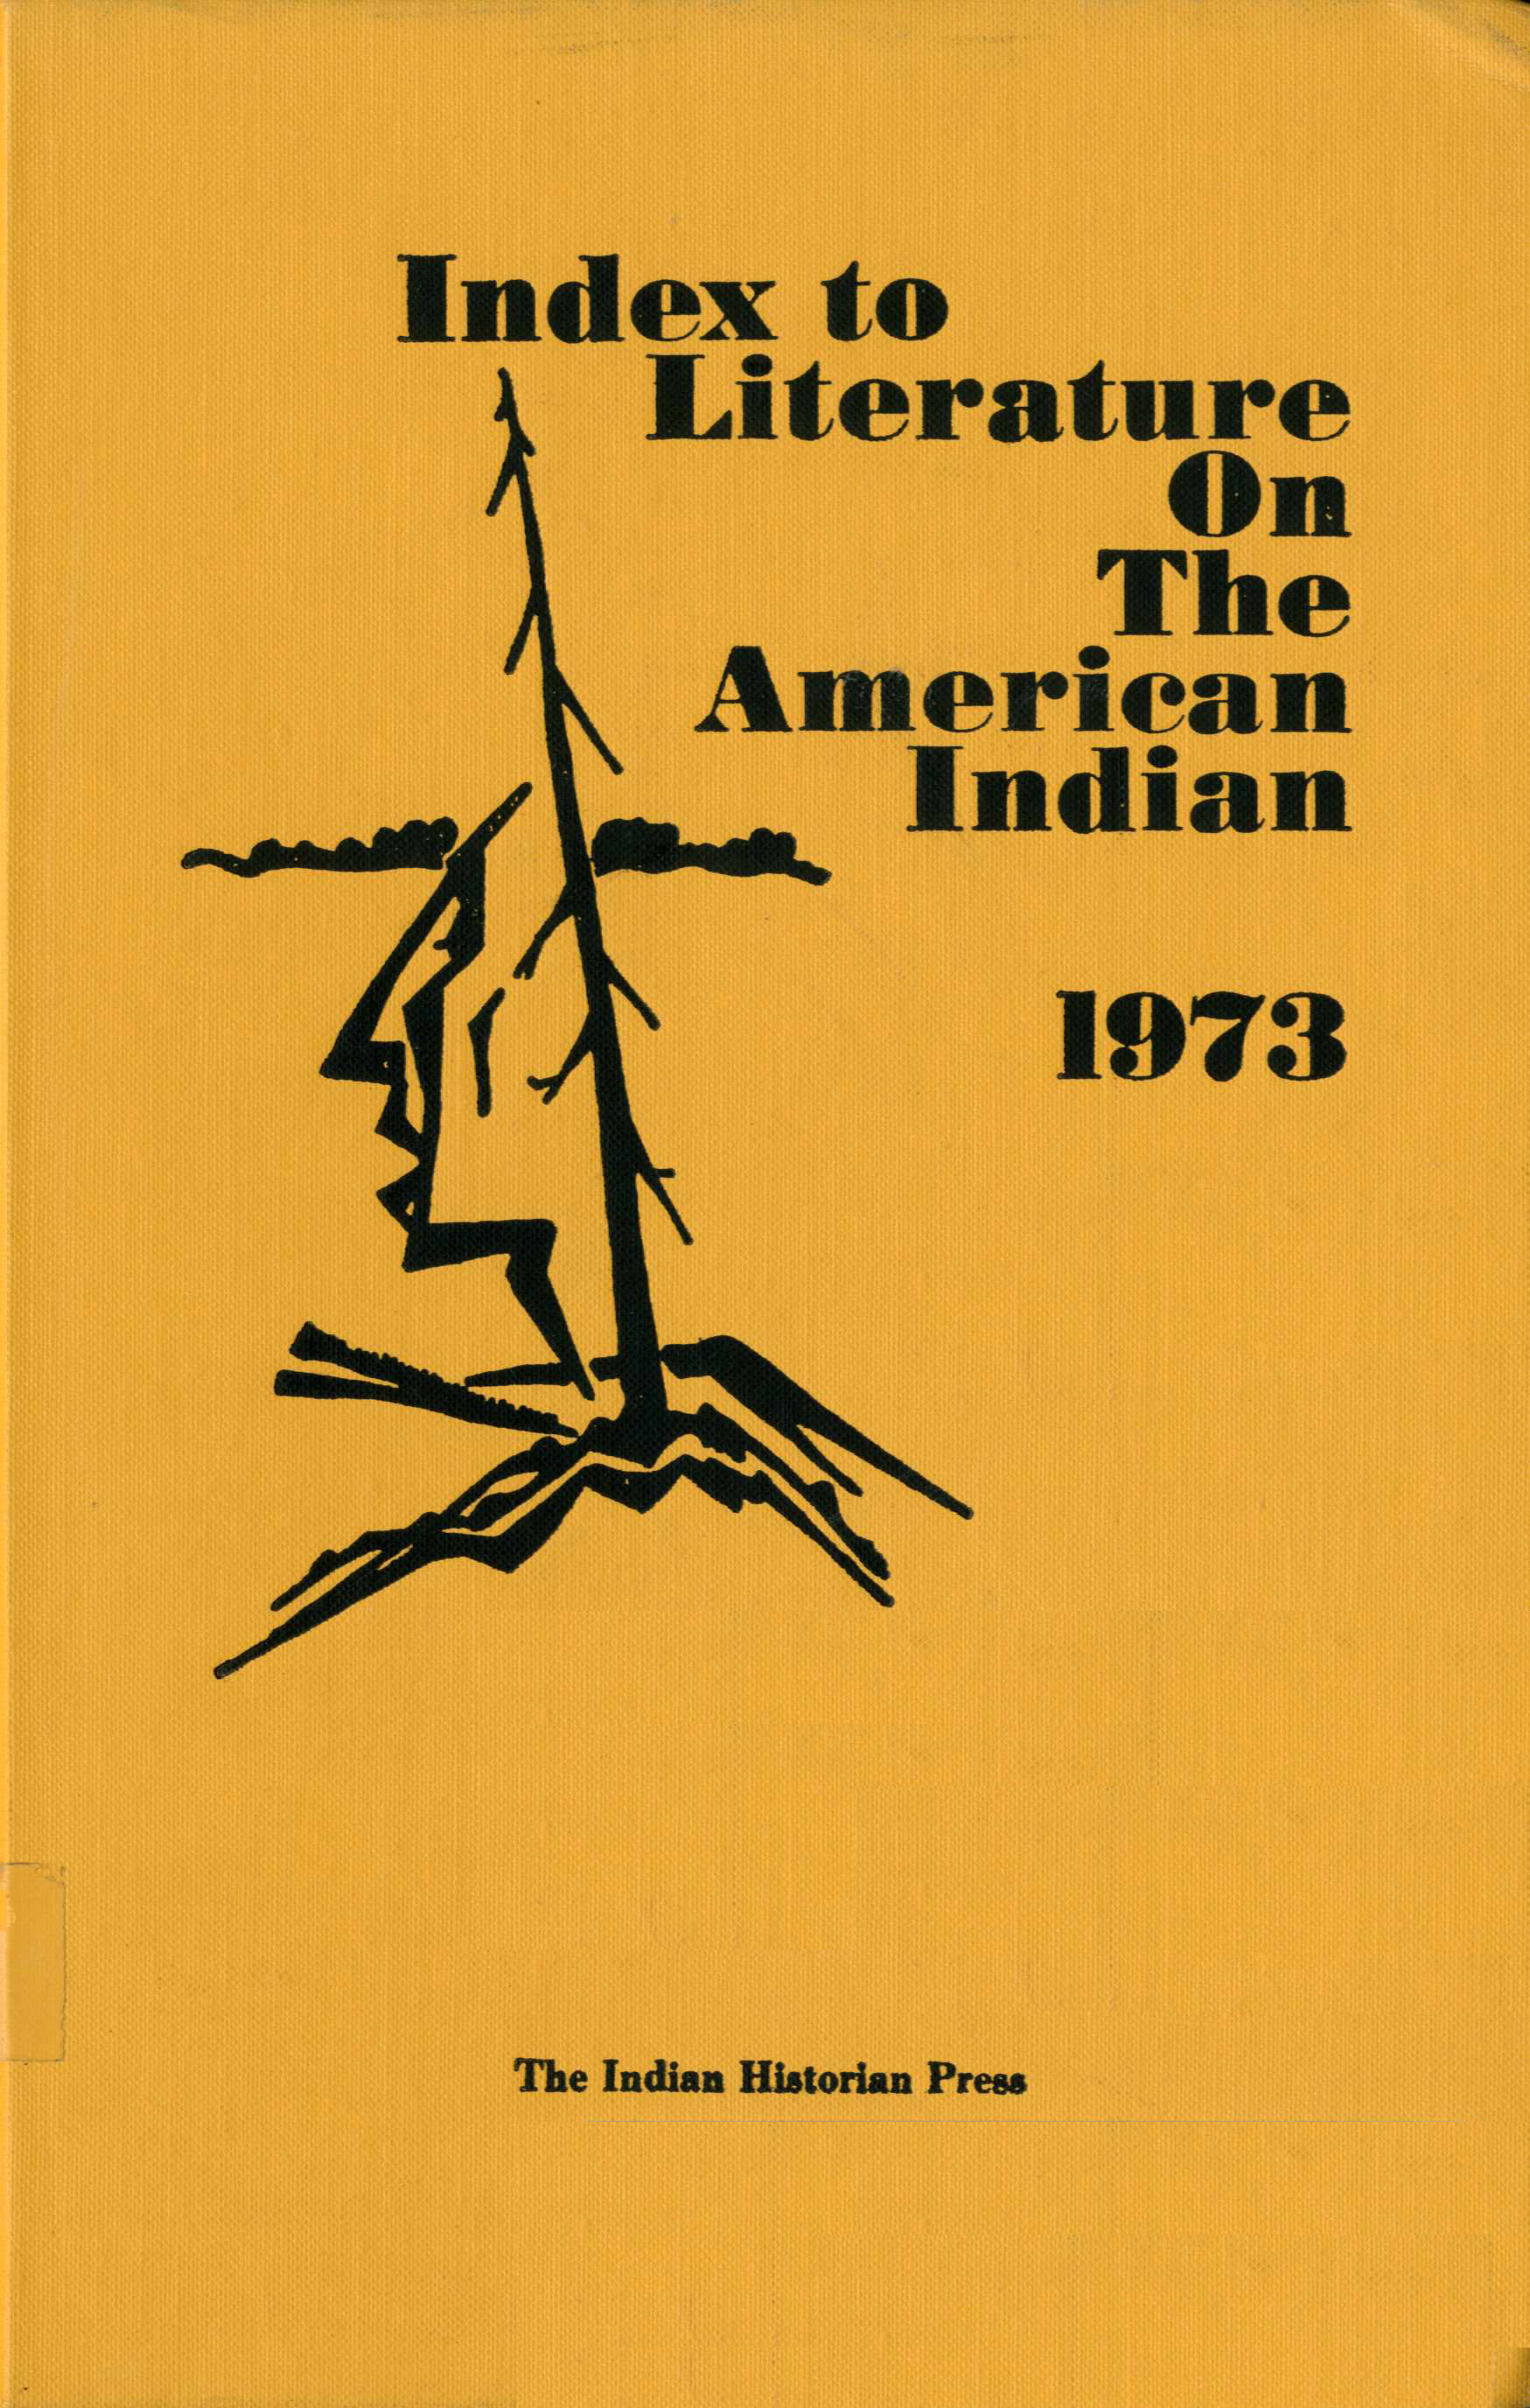 Index to Literature on the American Indian 1973 Image